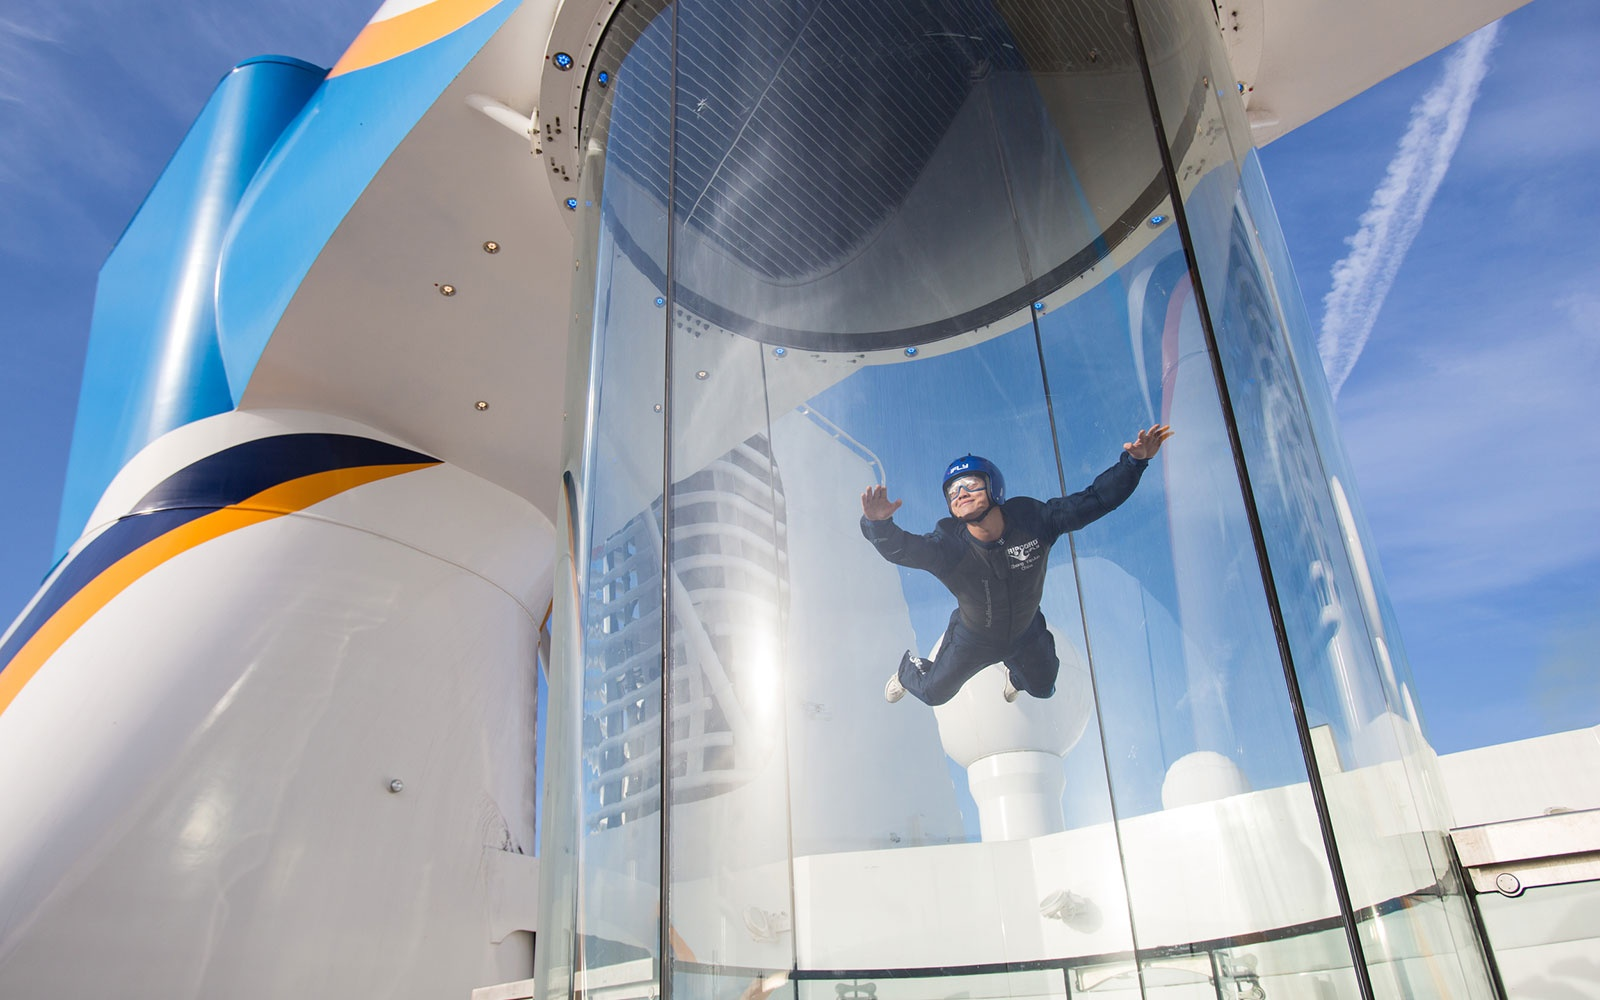 Skydiving Simulator on Royal Caribbean's Quantum of the Seas and Anthem of the Seas